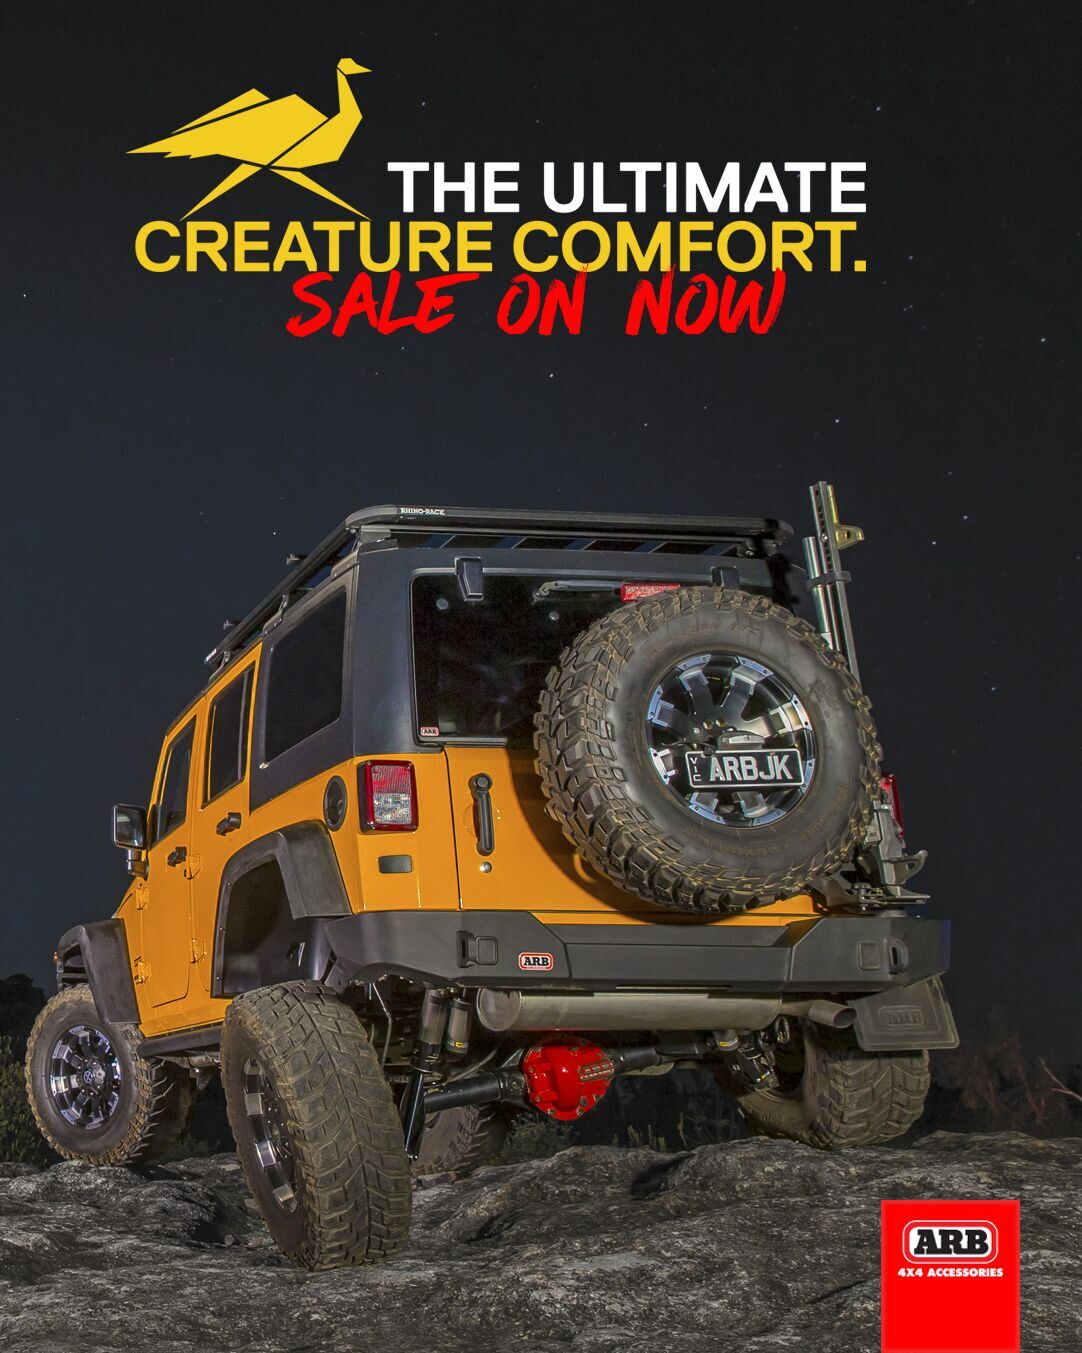 ARB: The ultimate creature comfort